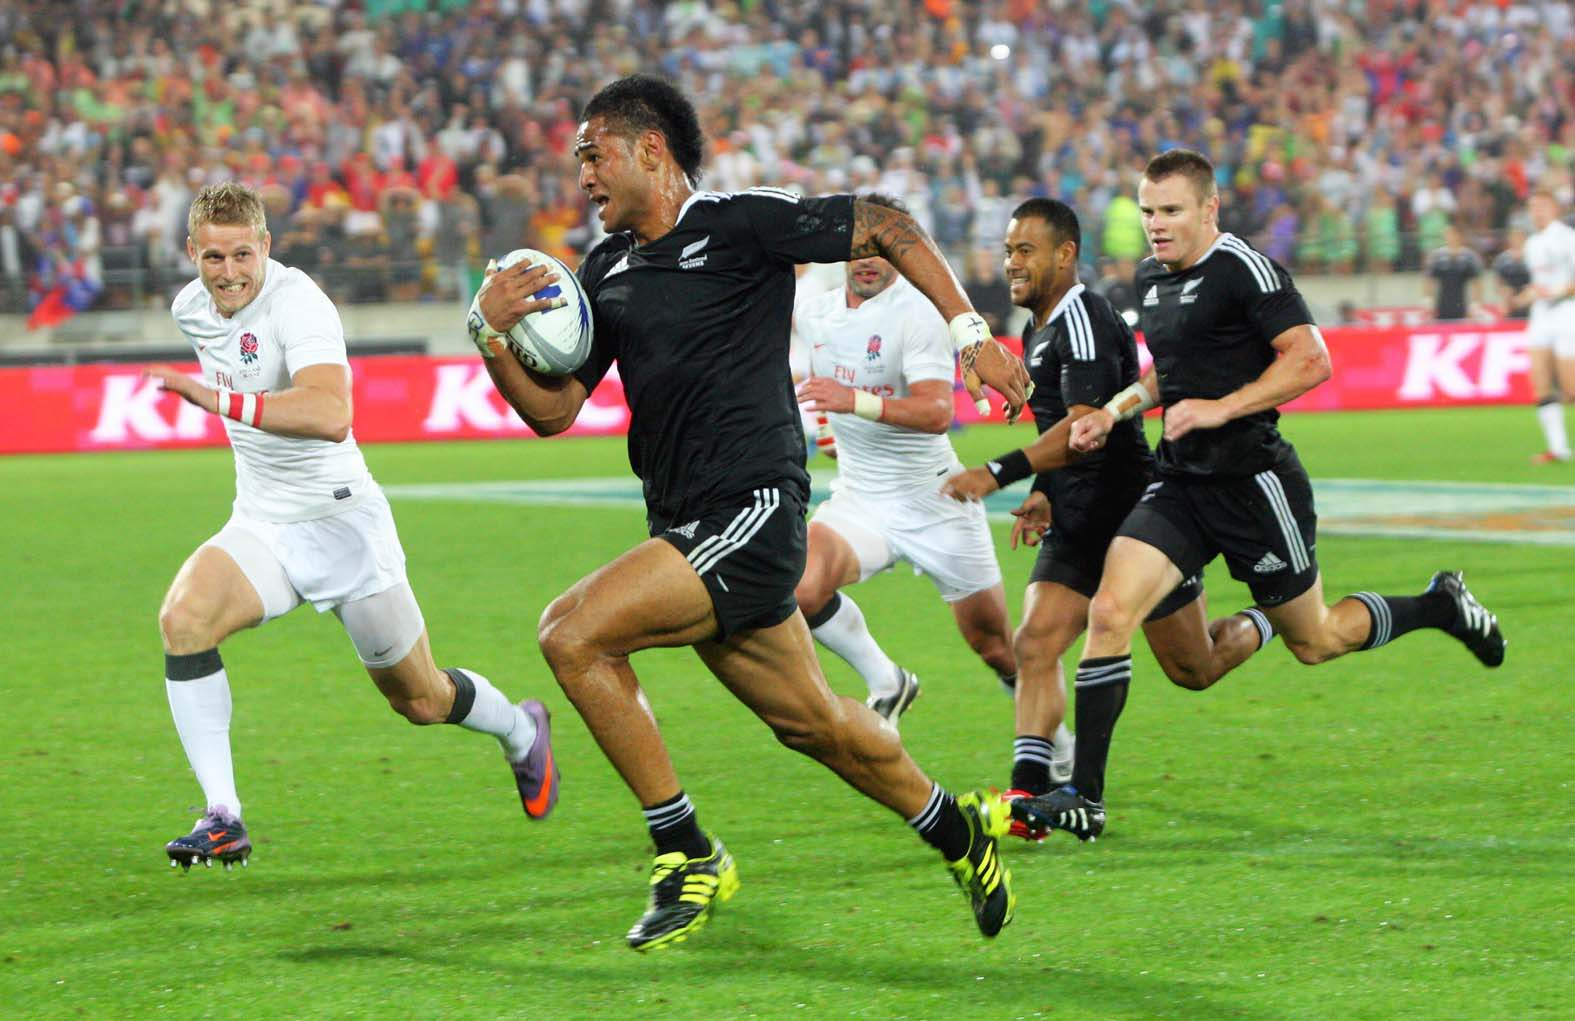 Rotorua to host National Rugby Sevens